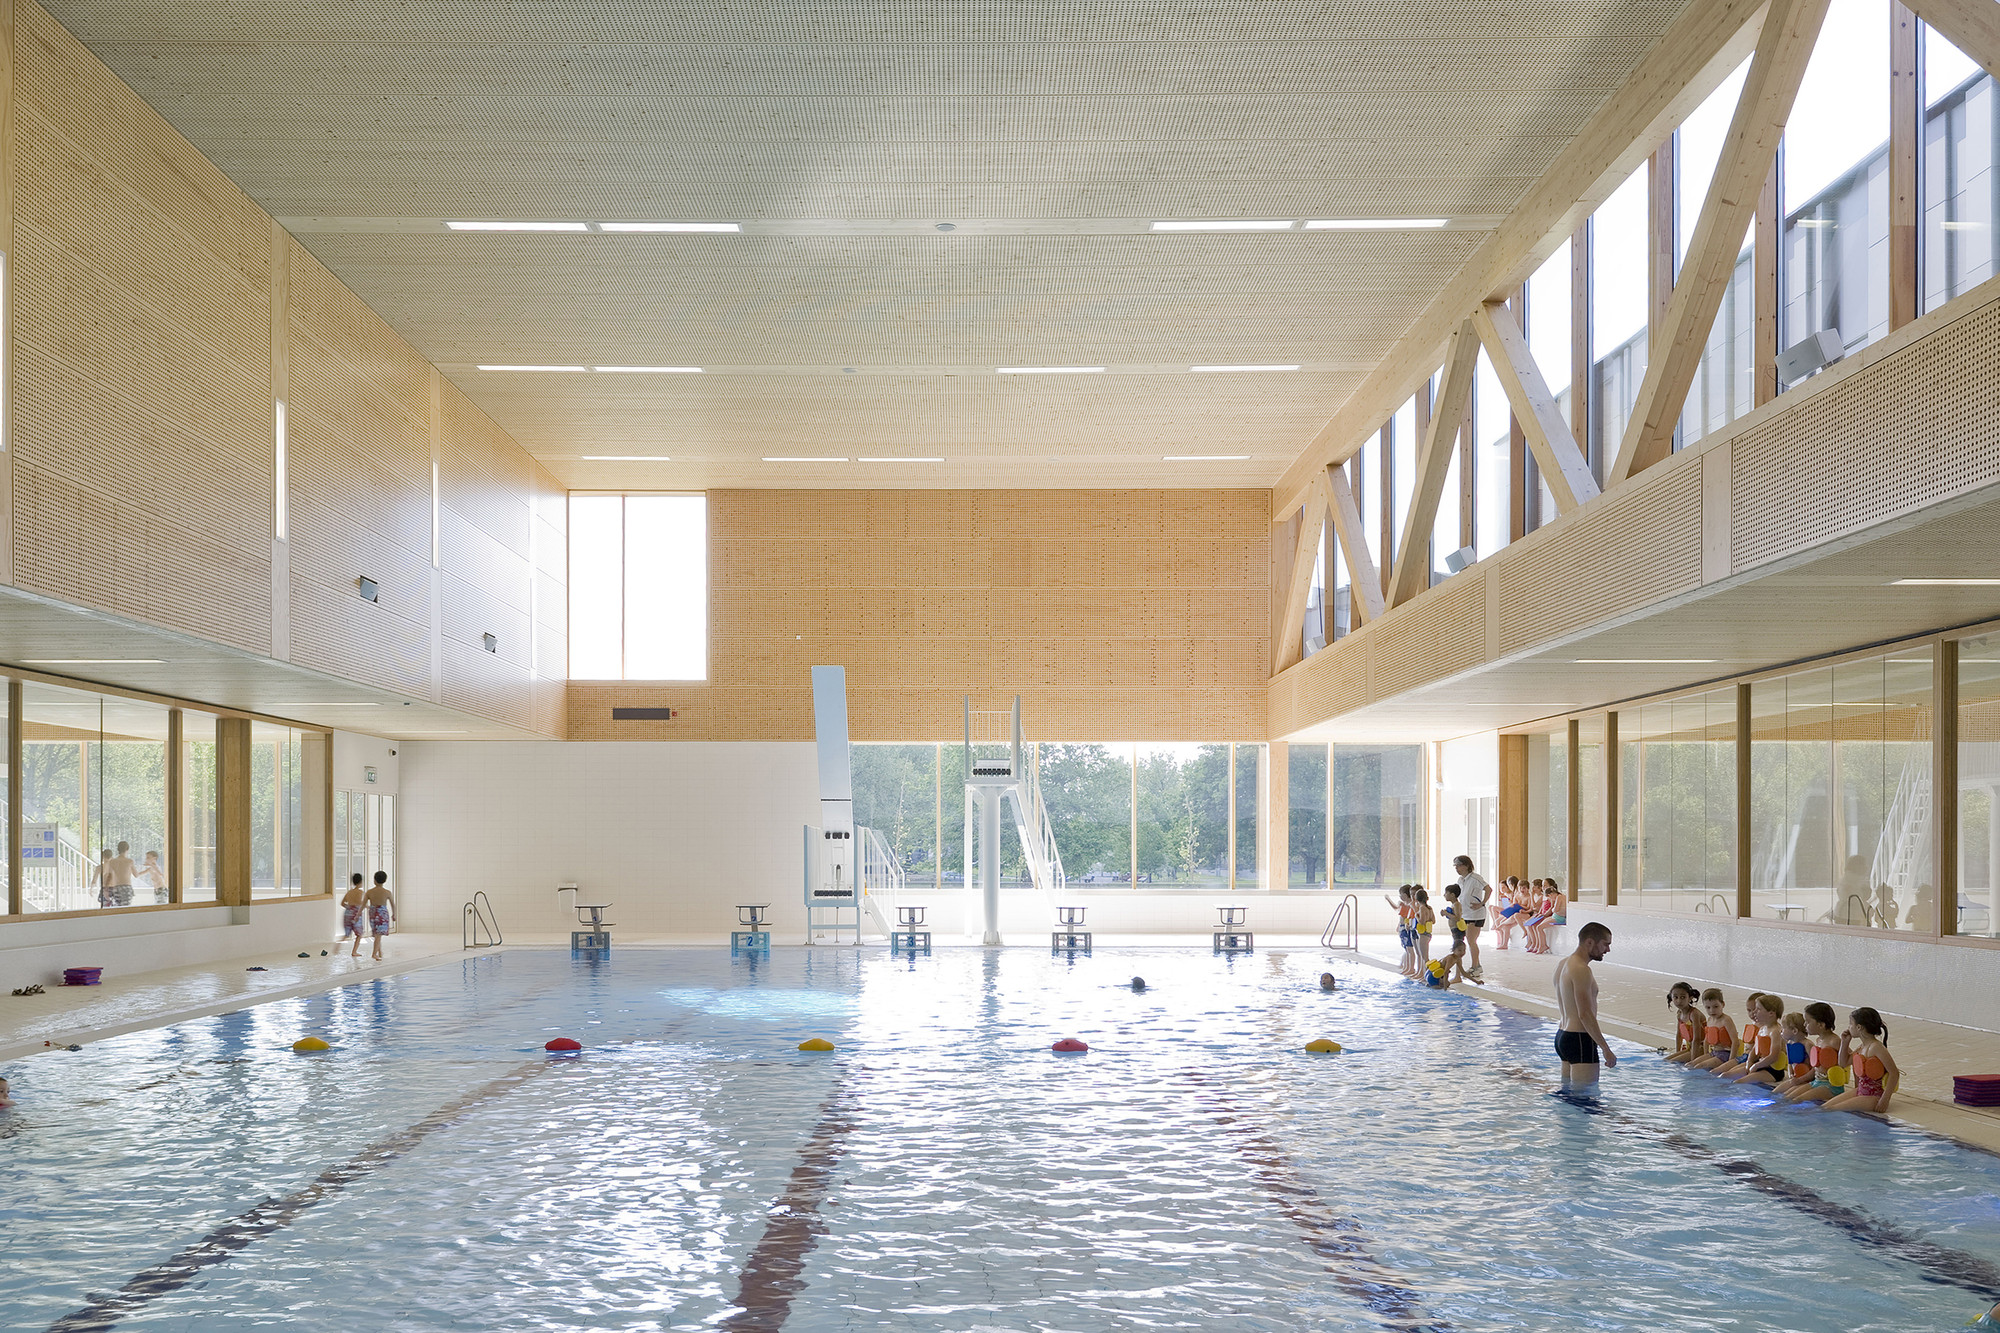 Gallery Of Multifunctional Swimming Pool Complex De Geusselt Slangen Koenis Architects 5